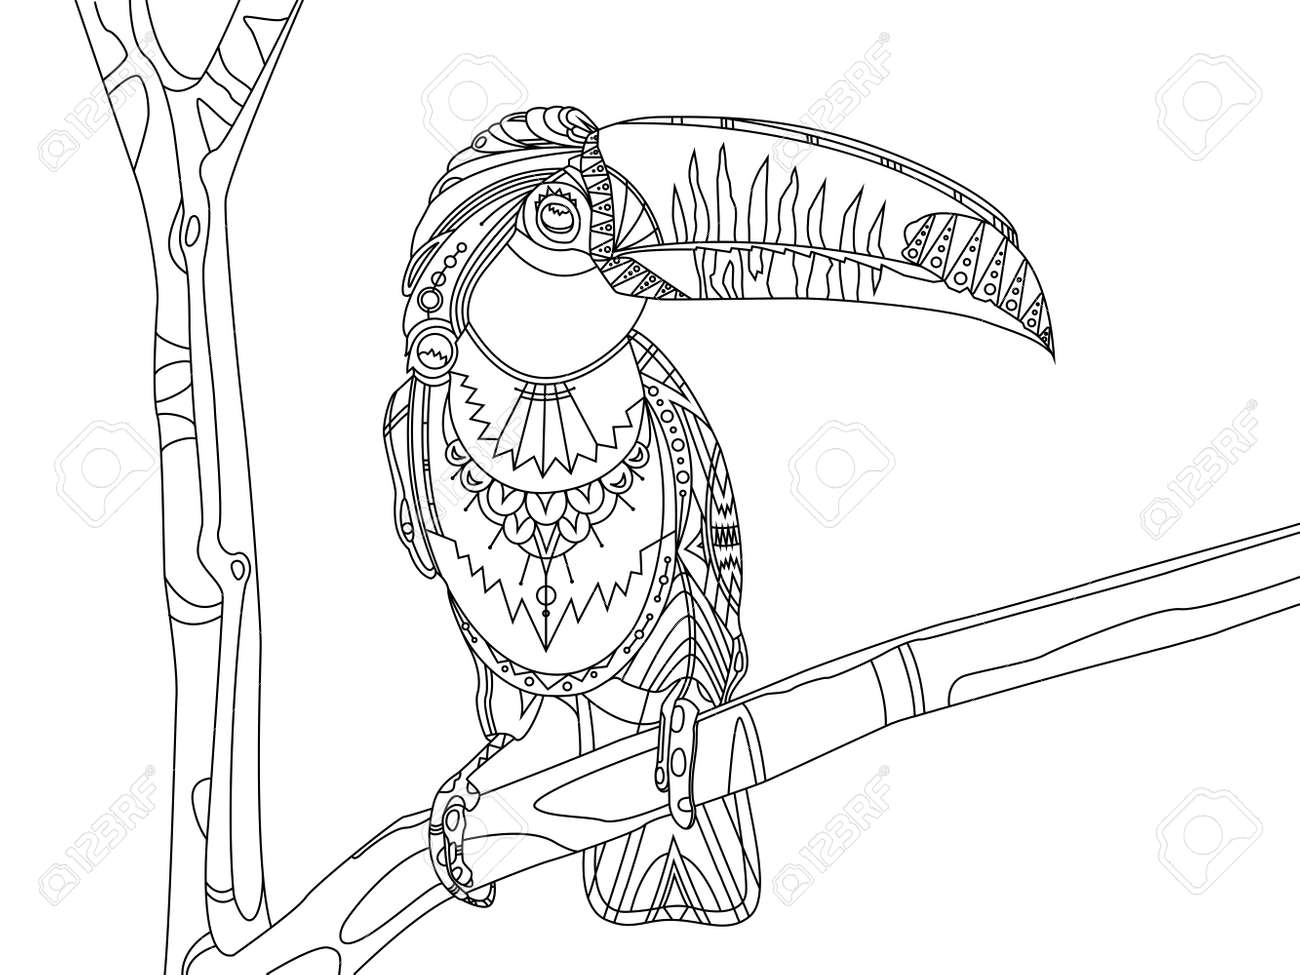 Toucan bird coloring book vector illustration. Black and white..